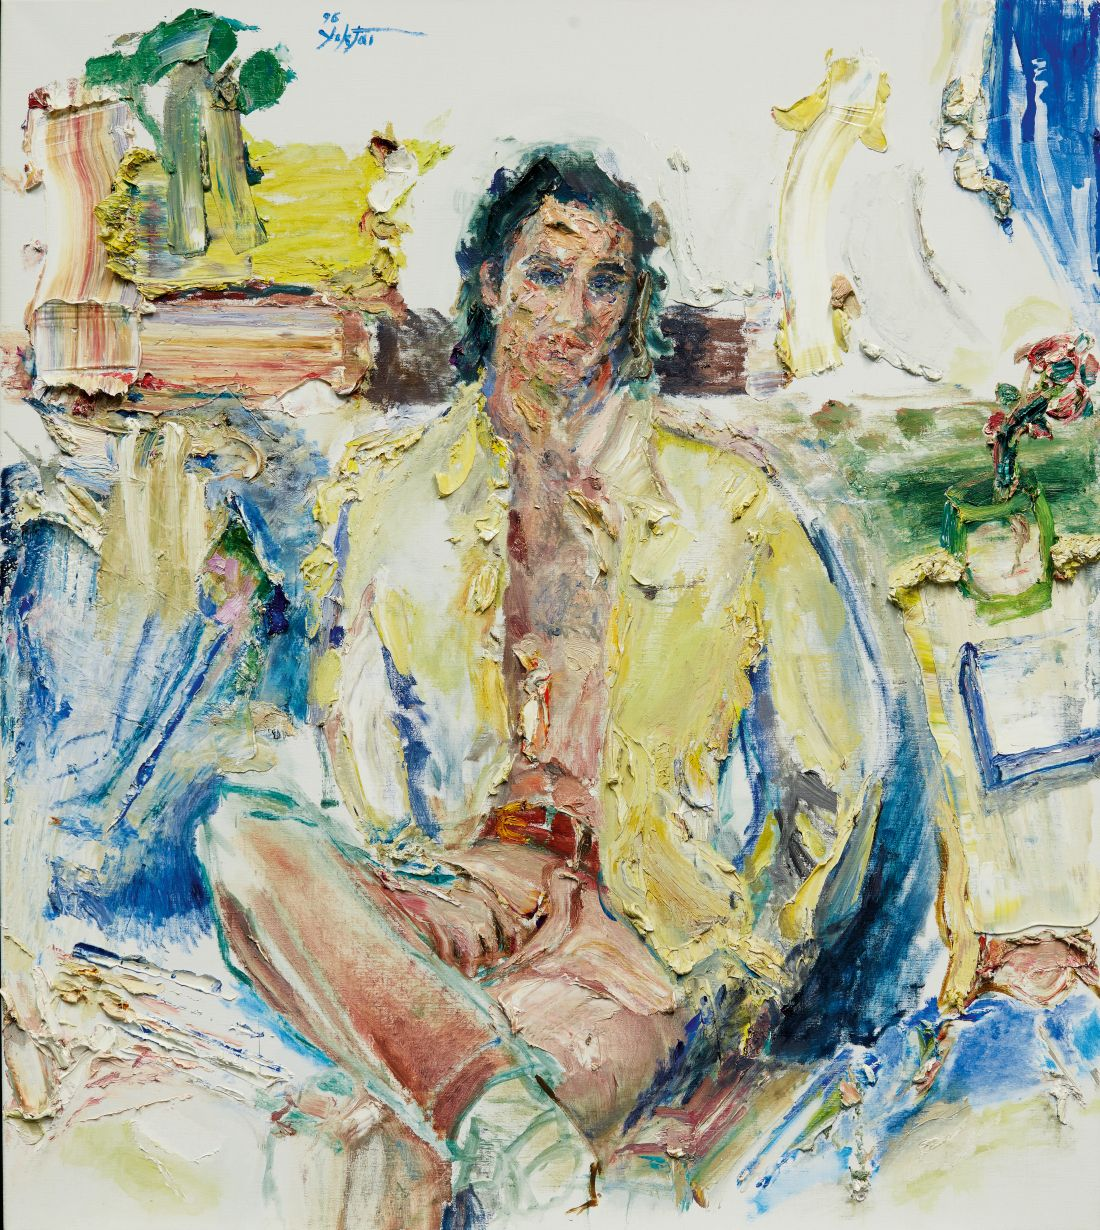 Enchanting exhibition of unseen artworks by pioneering painter and poet, Manoucher Yektai